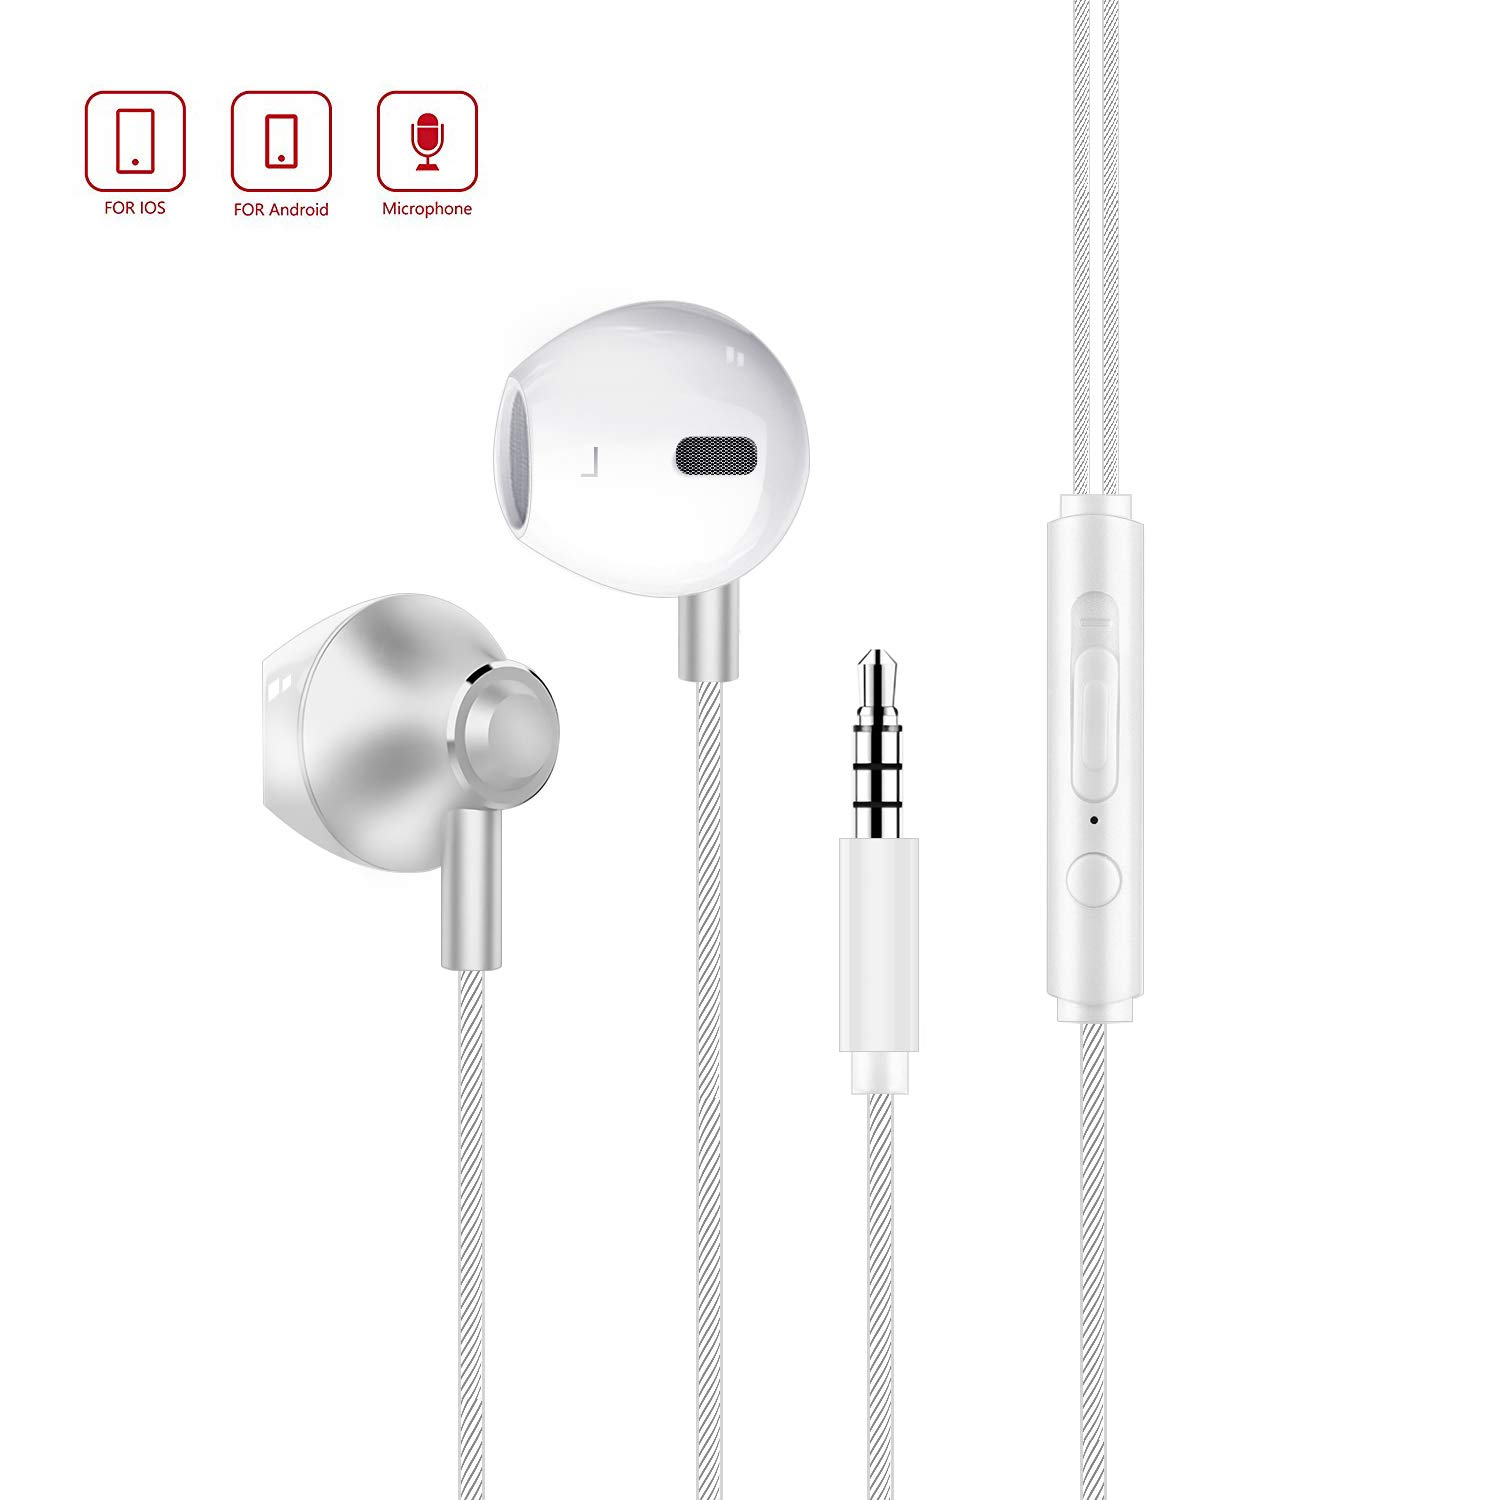 Wired Earbuds Senhomtog in-Ear Earbud Headphones Noise isolating Powerful Bass Metal Earbuds with Microphone Lightweight Sport Earphones Compatible with I Phone Android and More 3.5 mm Devices White